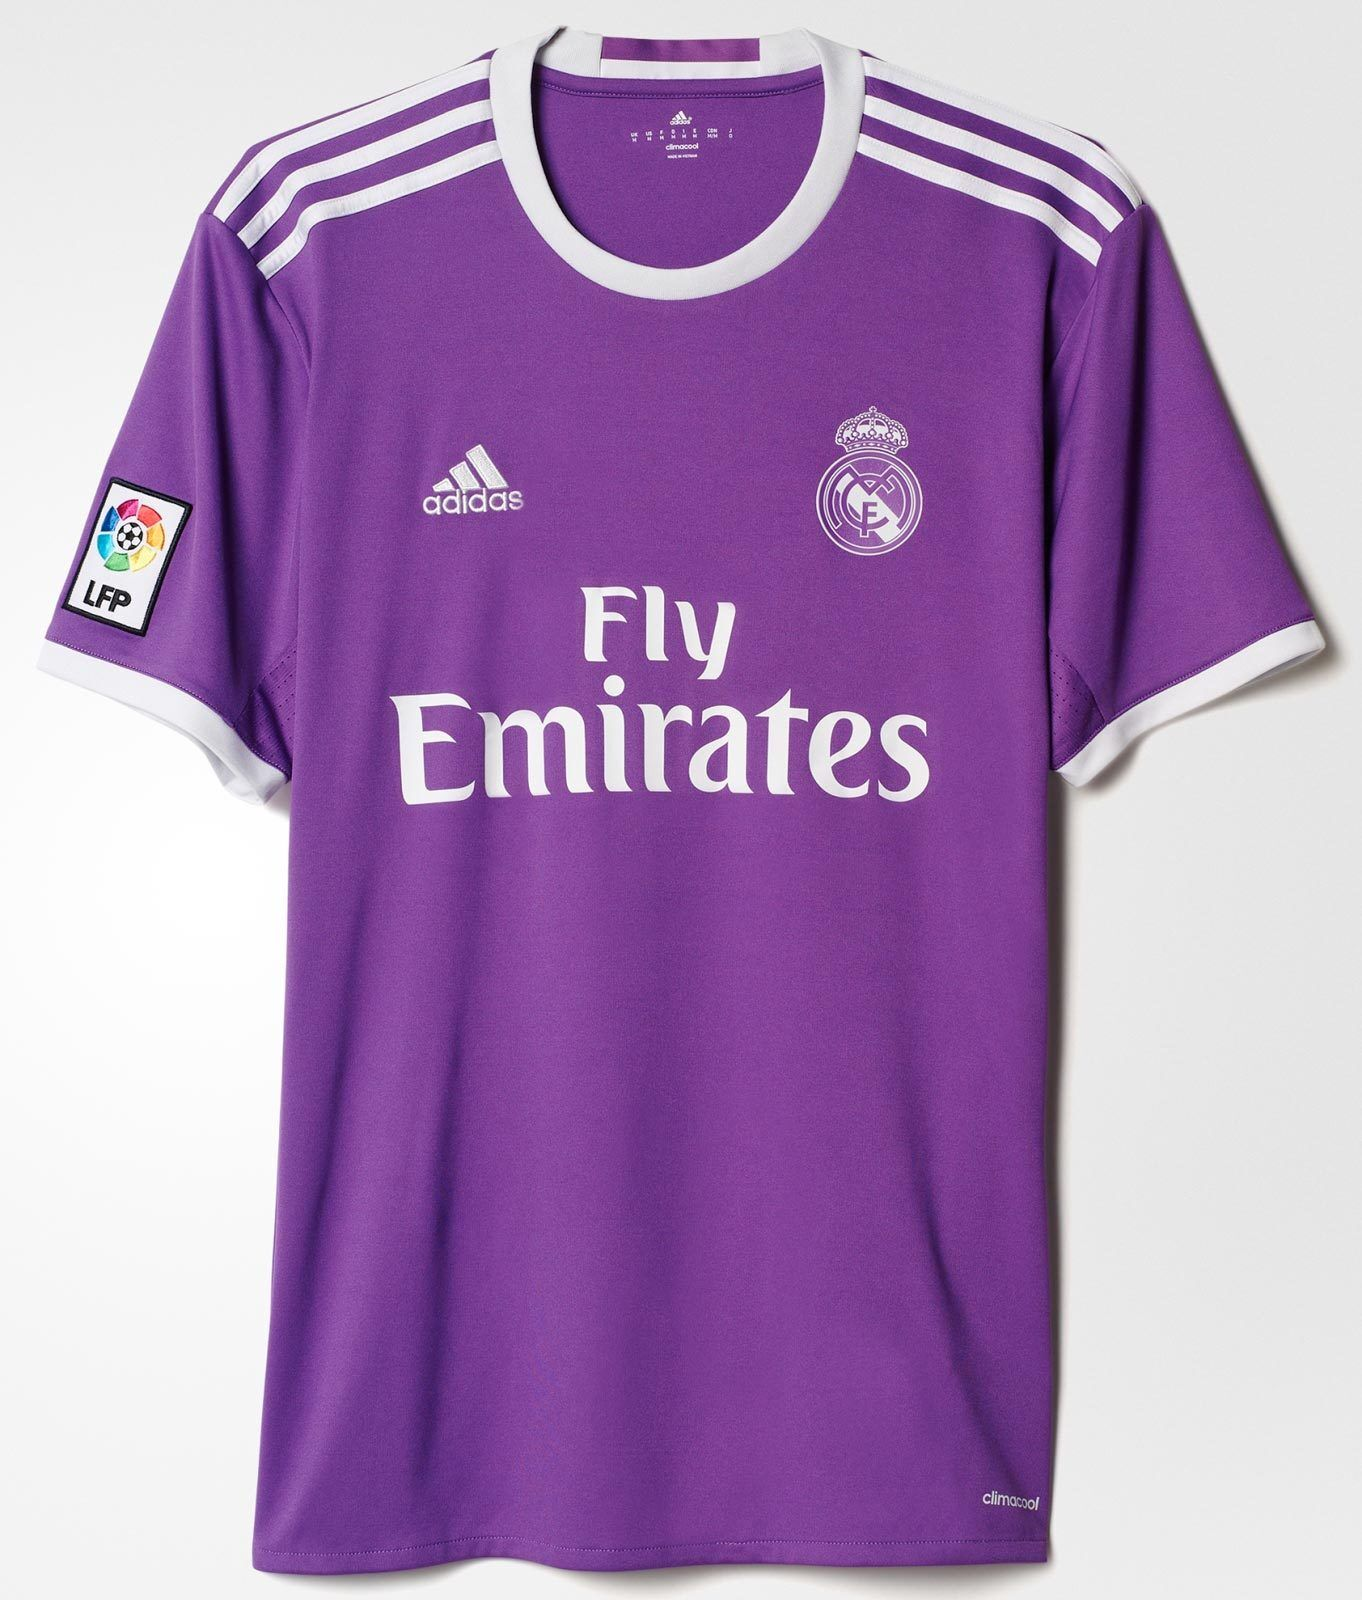 Adidas Real Madrid Official 2016 2017 Away Soccer Football Jersey